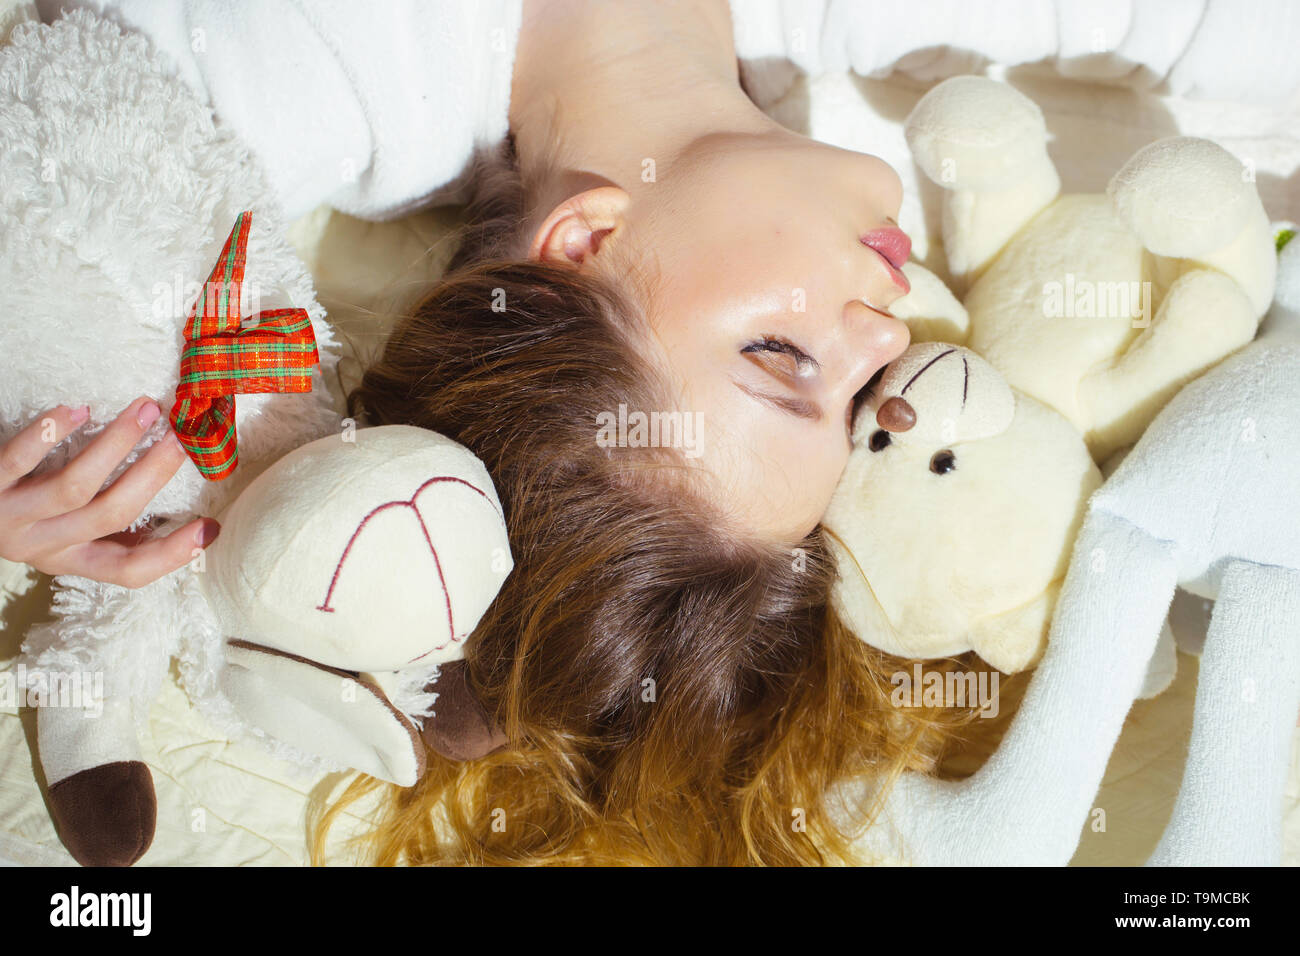 Beautiful girl with curly hair sleeping in bed. Pretty young woman hugging toy in sleep. Sweet dreams - Stock Image